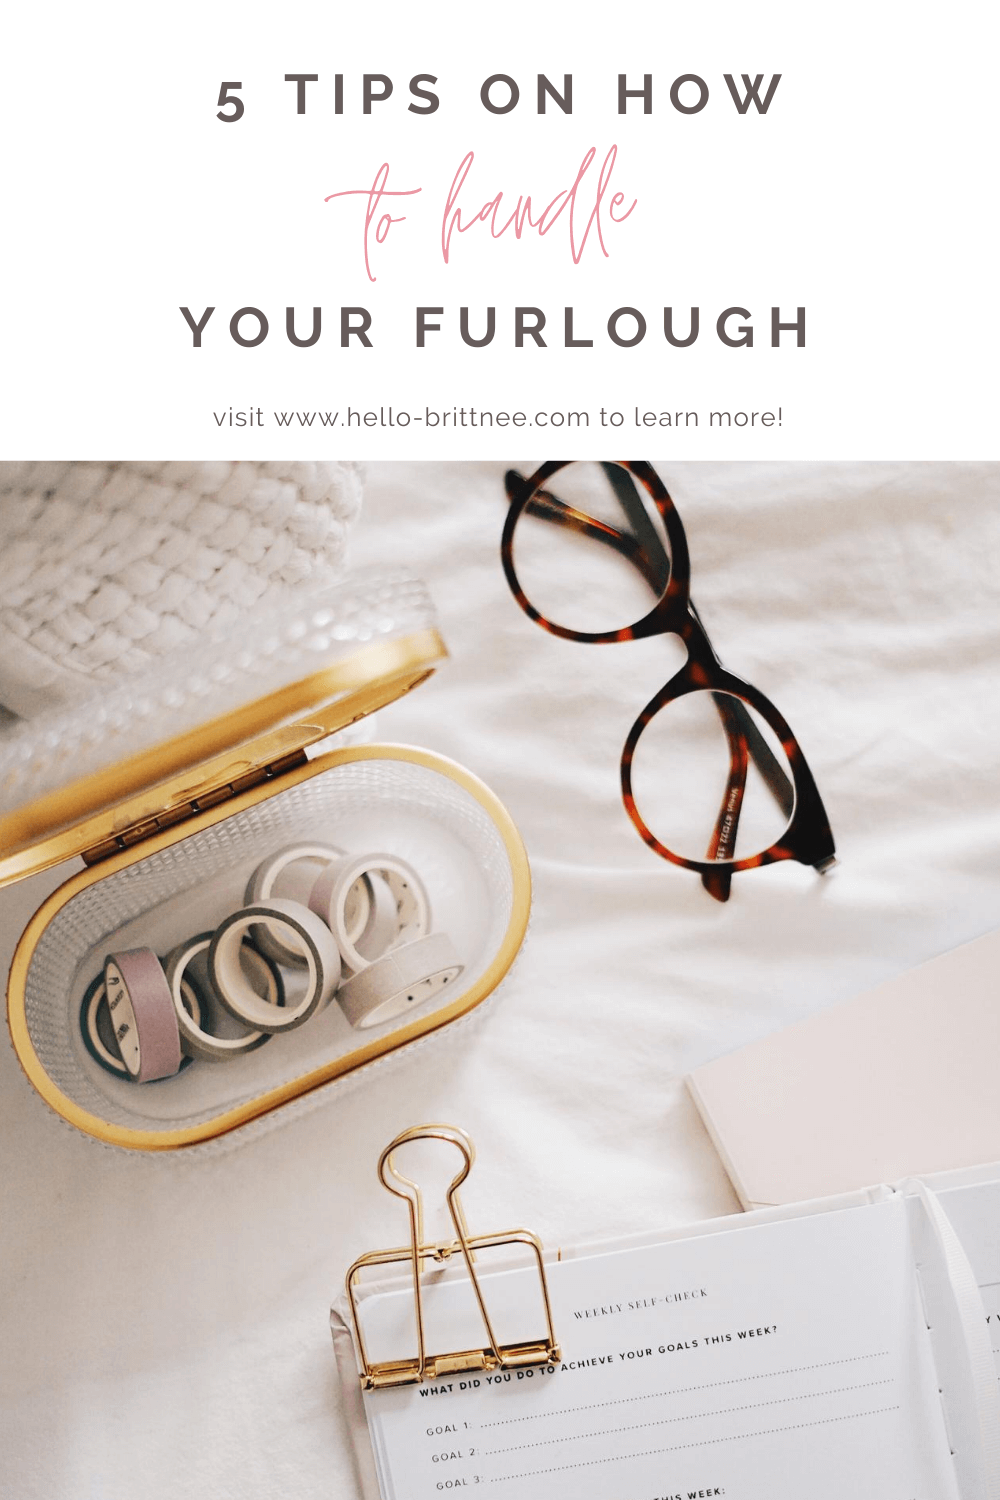 hello-brittnee-furlough-tips